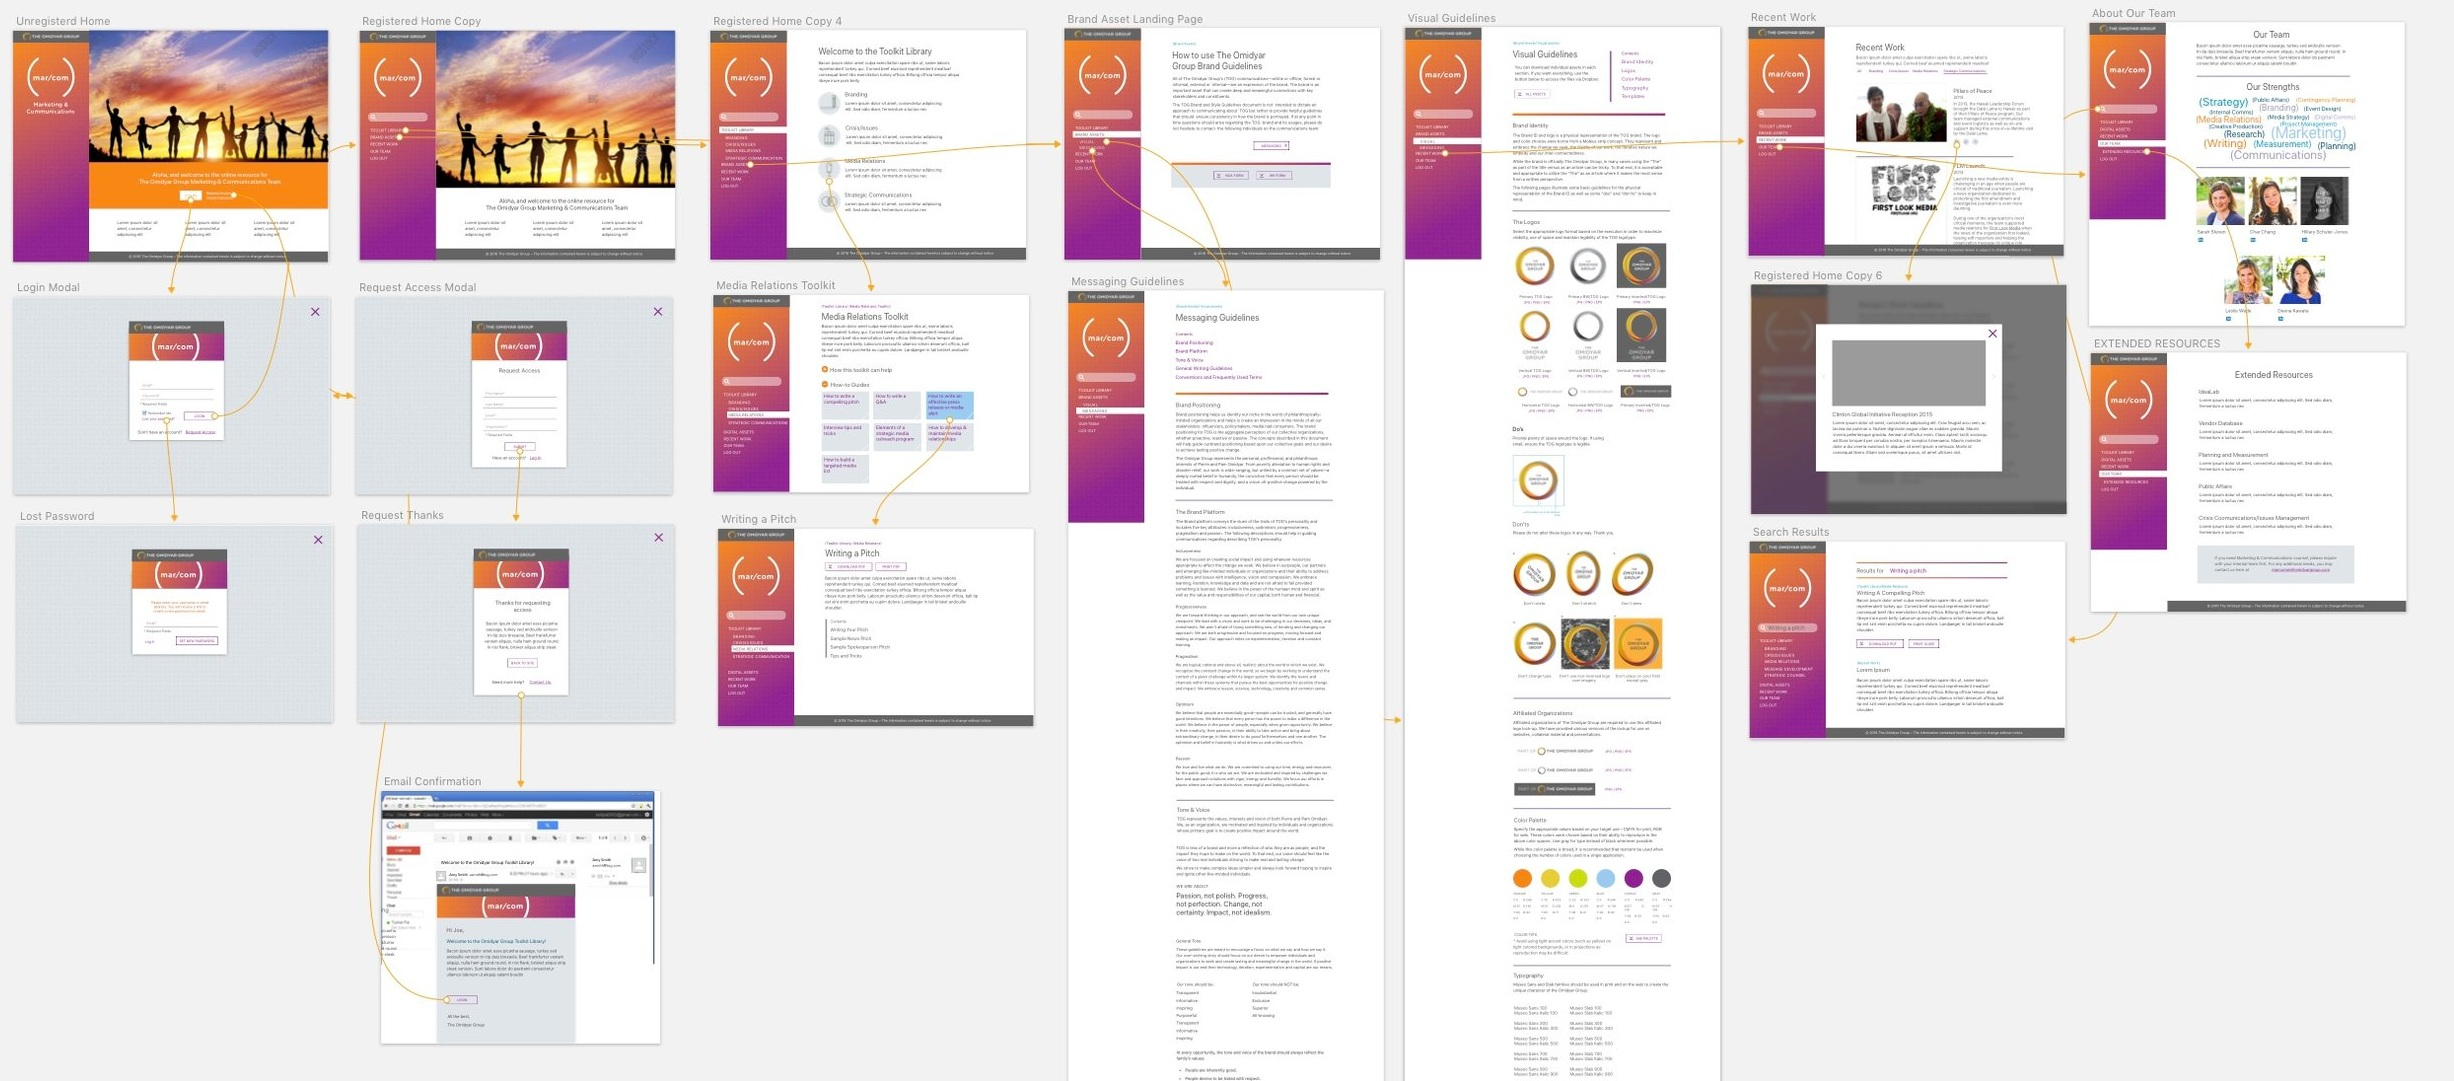 The approved wireframes were then translated into a UX/UI interface designed in Sketch. The interactions and user flow was outlined and prototyped.